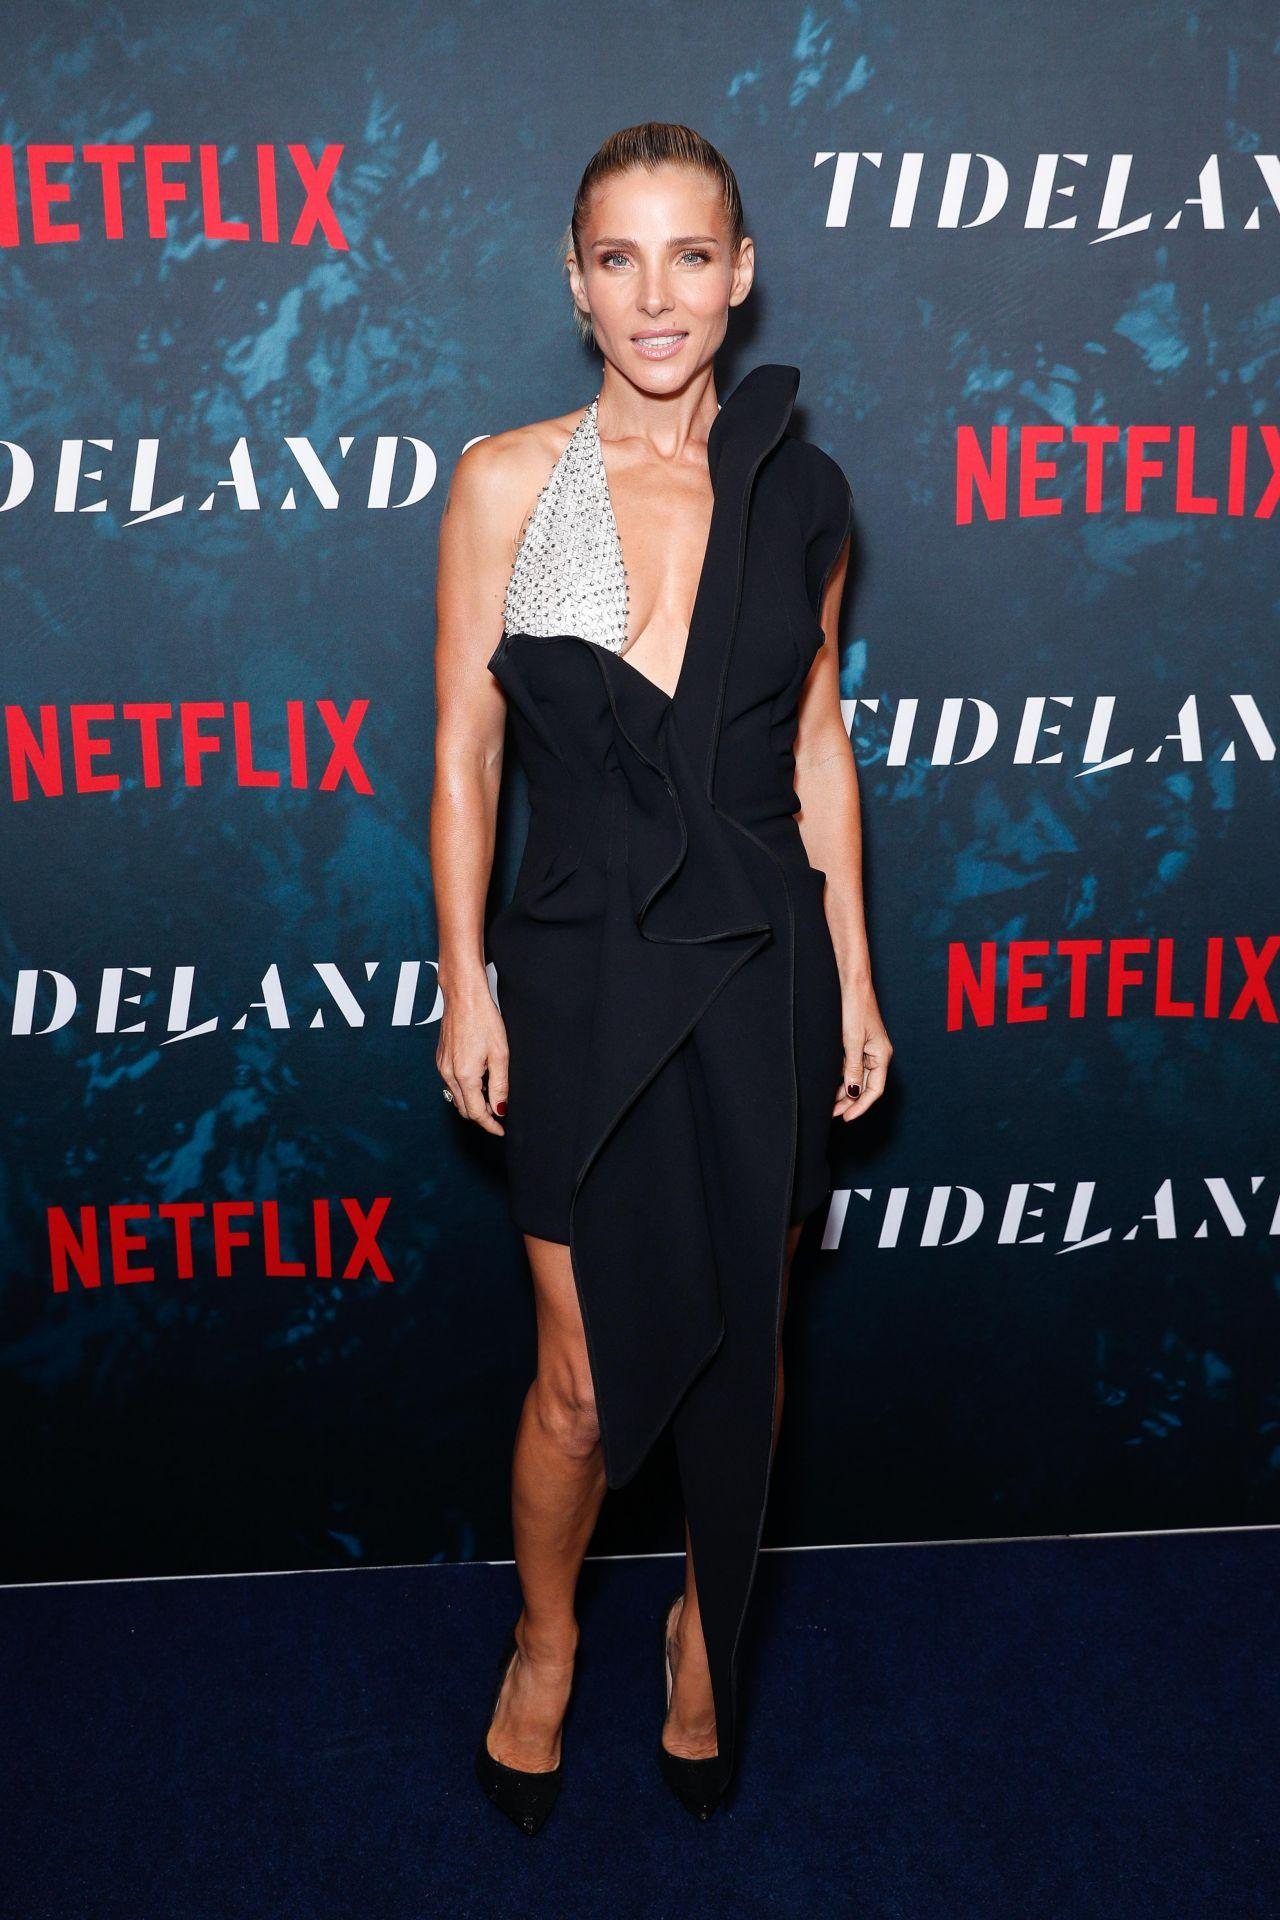 Tidelands Netflix World Premiere in Brisbane-28